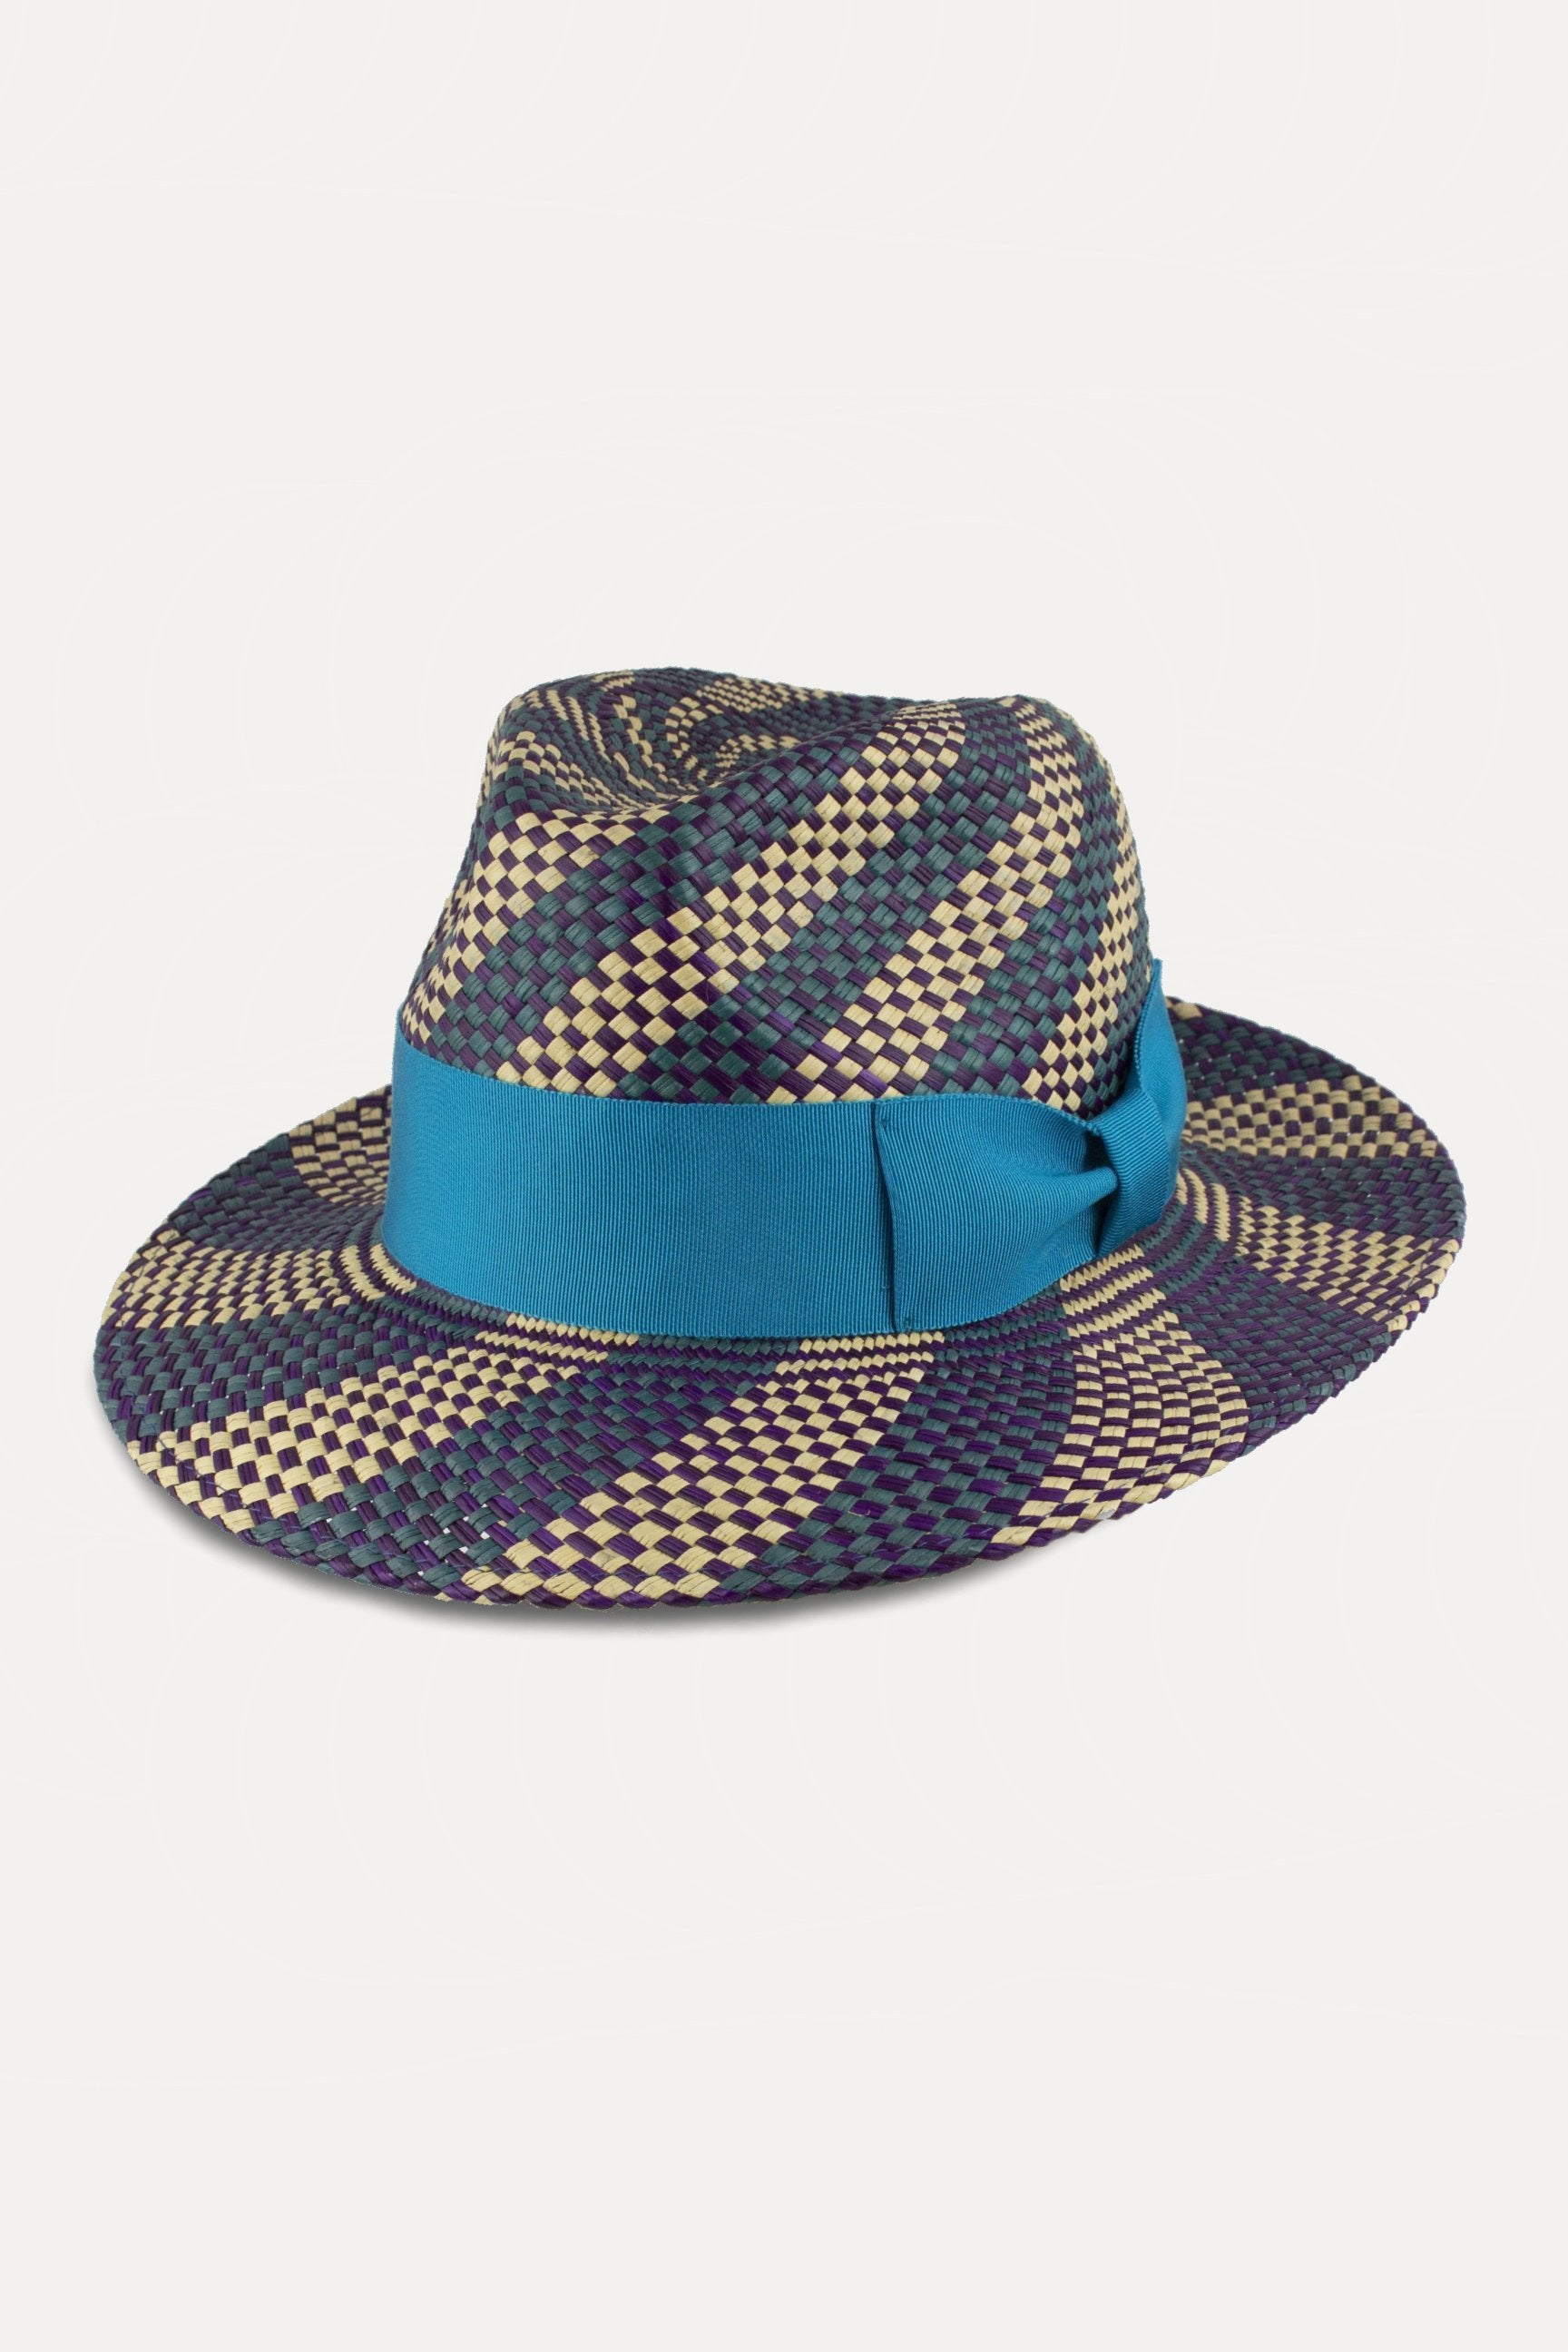 PANAMA FEDORA - TWISTER-hats-A Child Of The Jago